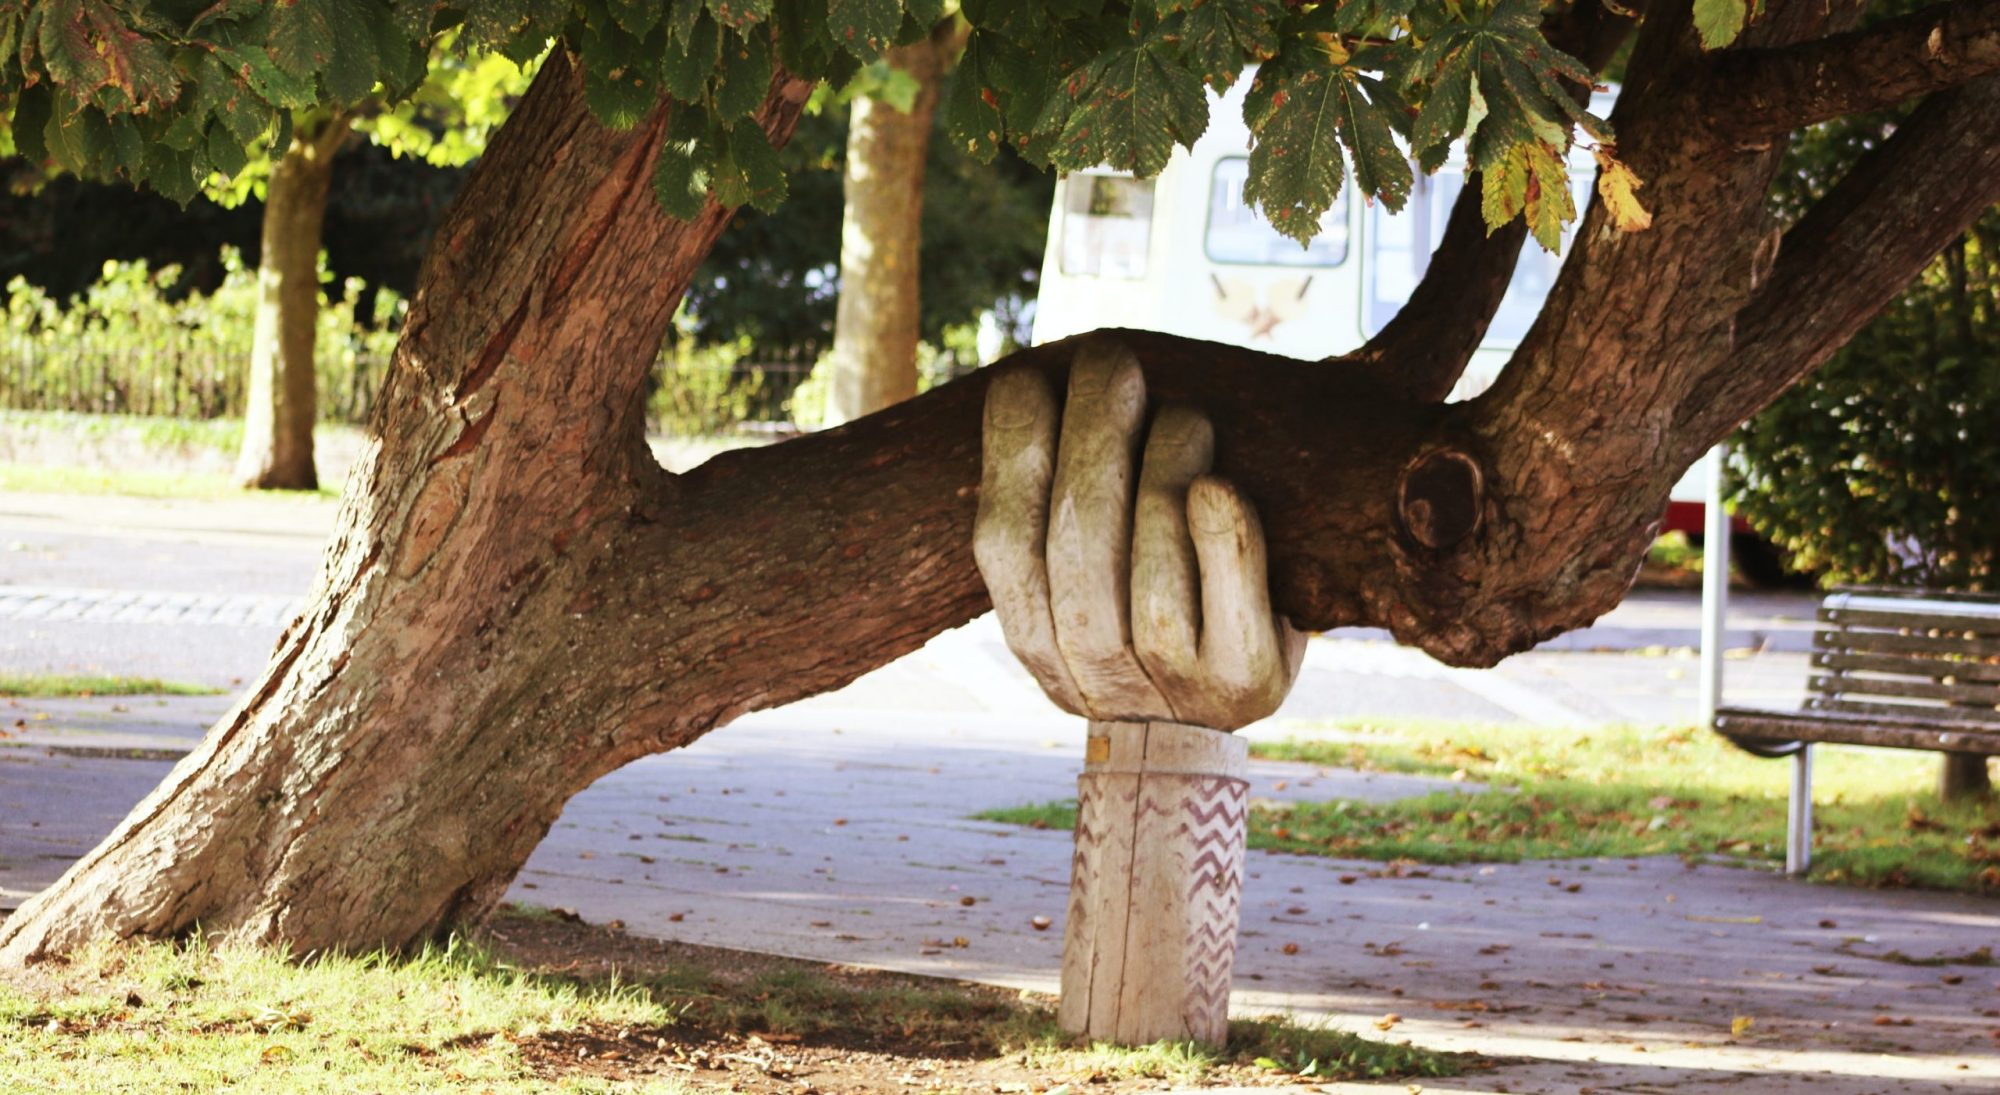 A carved wooden hand holds up the heavy branches of a tree.